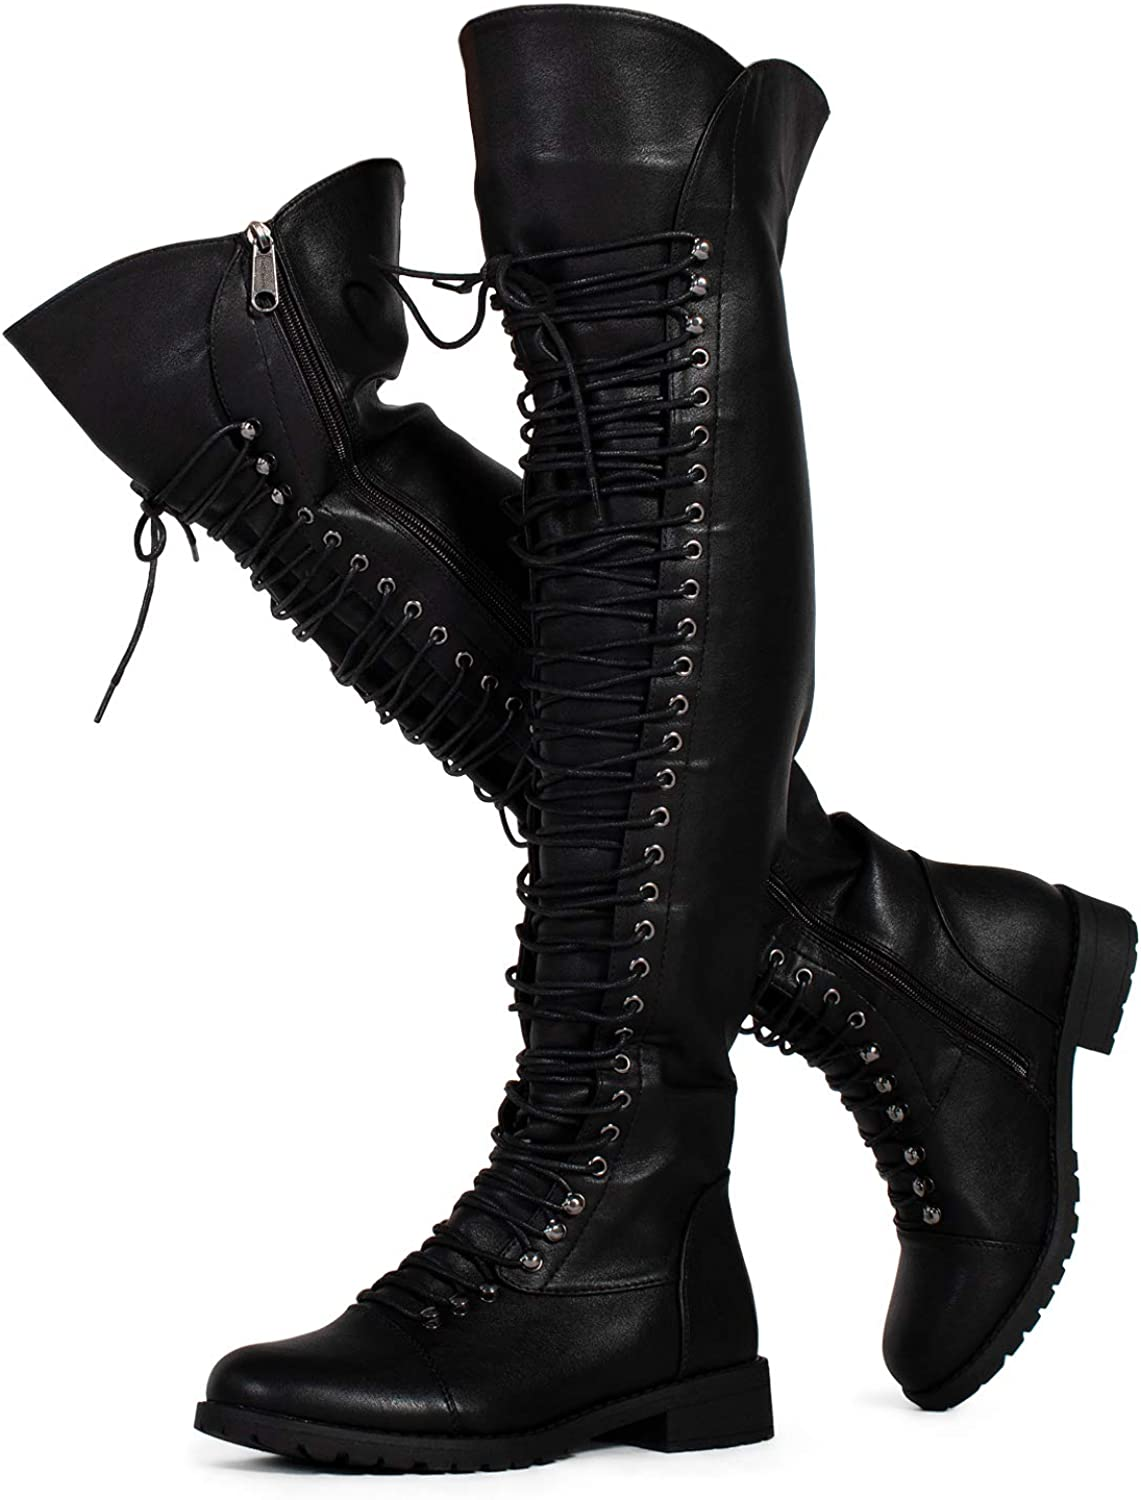 RF ROOM OF FASHION Womens Lace Up Military Over The Knee OTK Combat Riding Boots